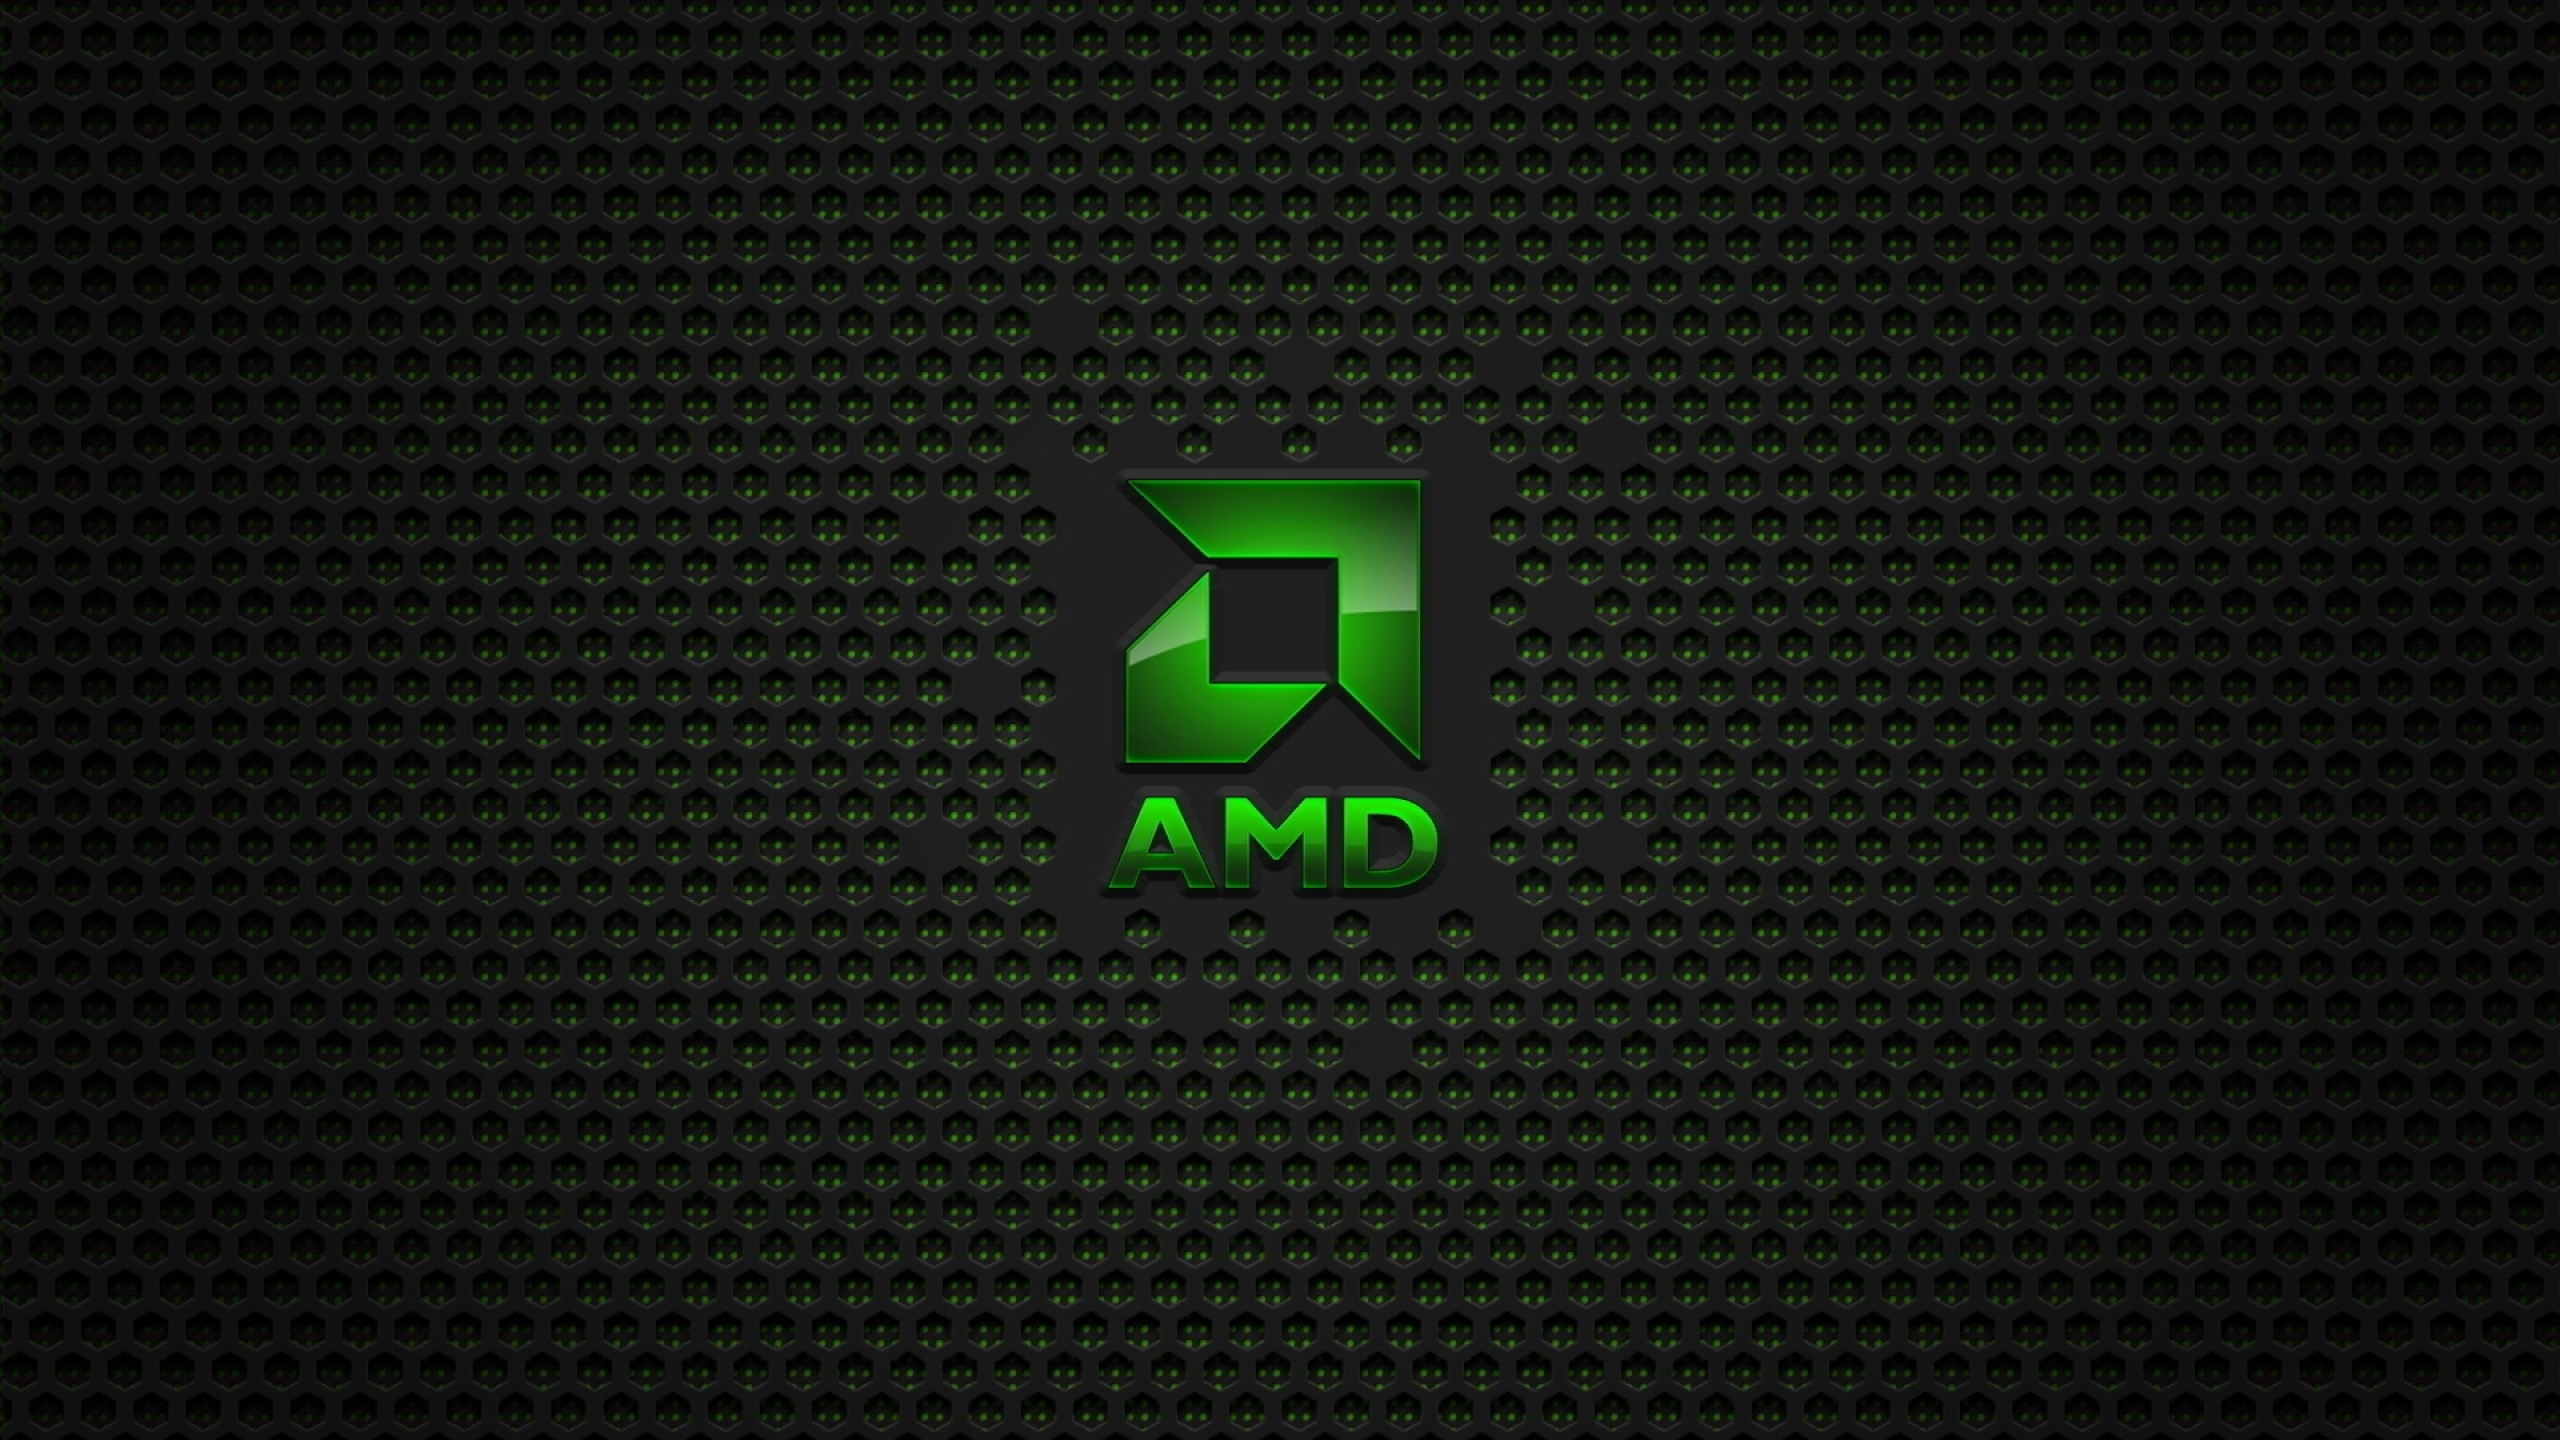 2560x1440 Amd Brand Computer 1440p Resolution Wallpaper Hd Hi Tech 4k Wallpapers Images Photos And Background